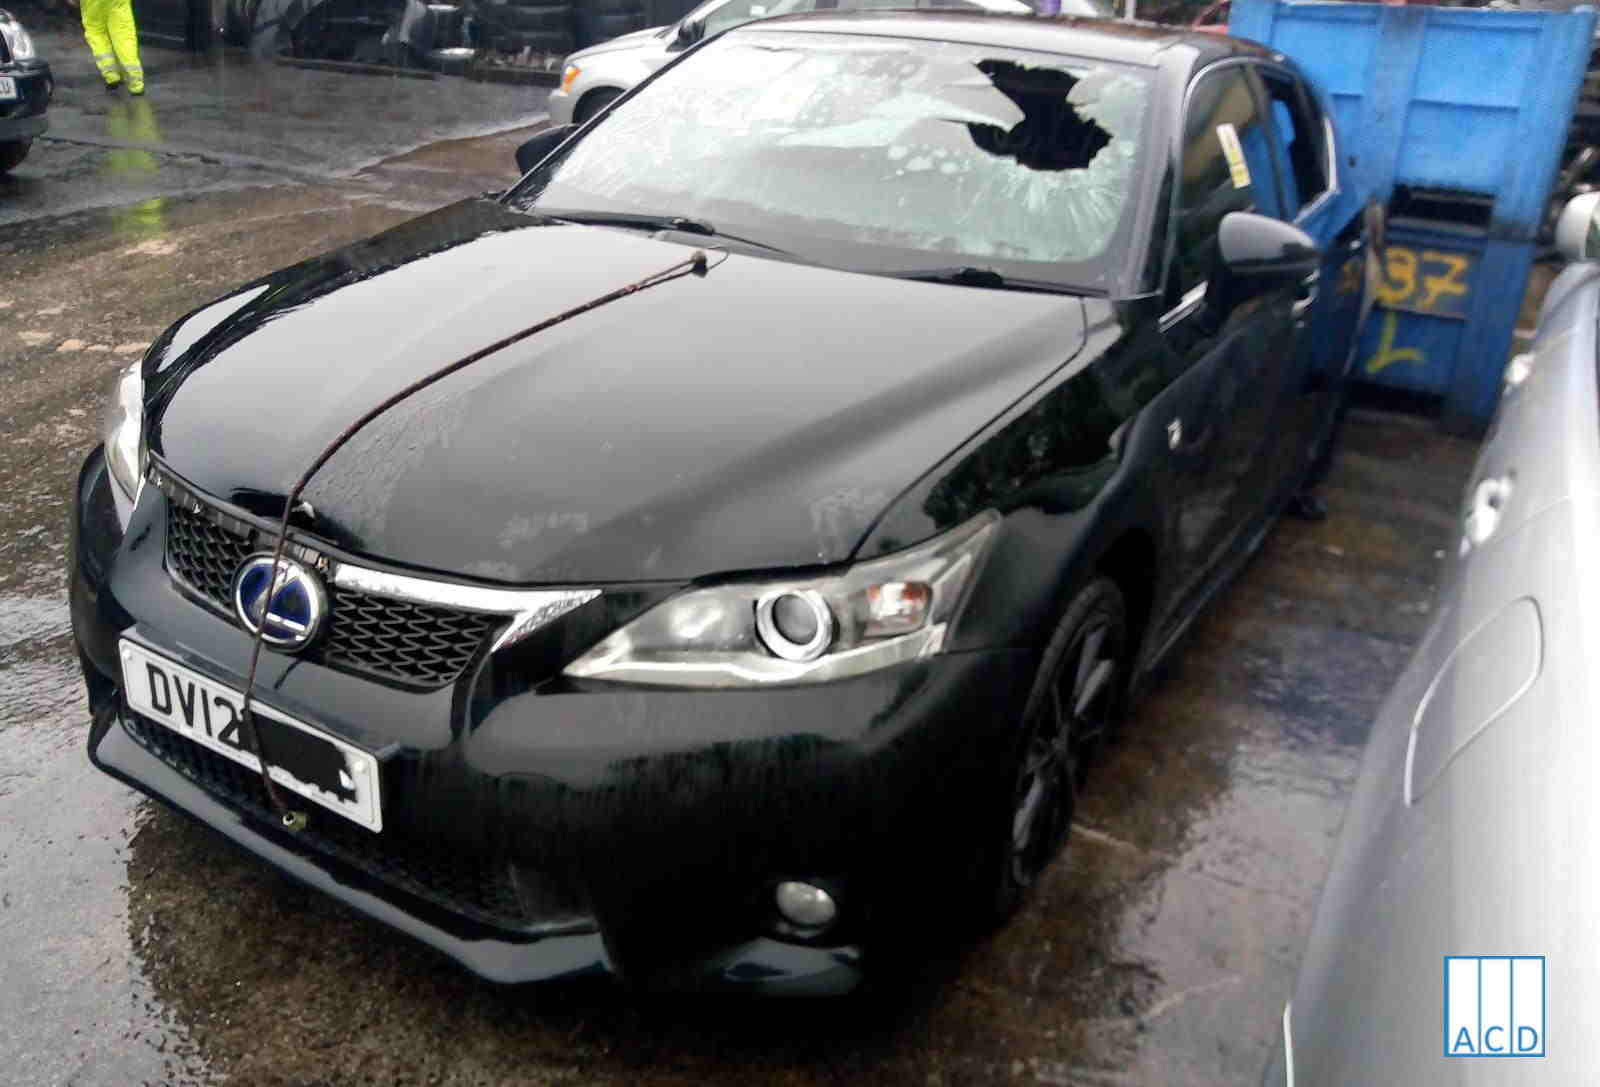 Lexus CT200 1.8 Petrol Automatic 2012 #3226 01